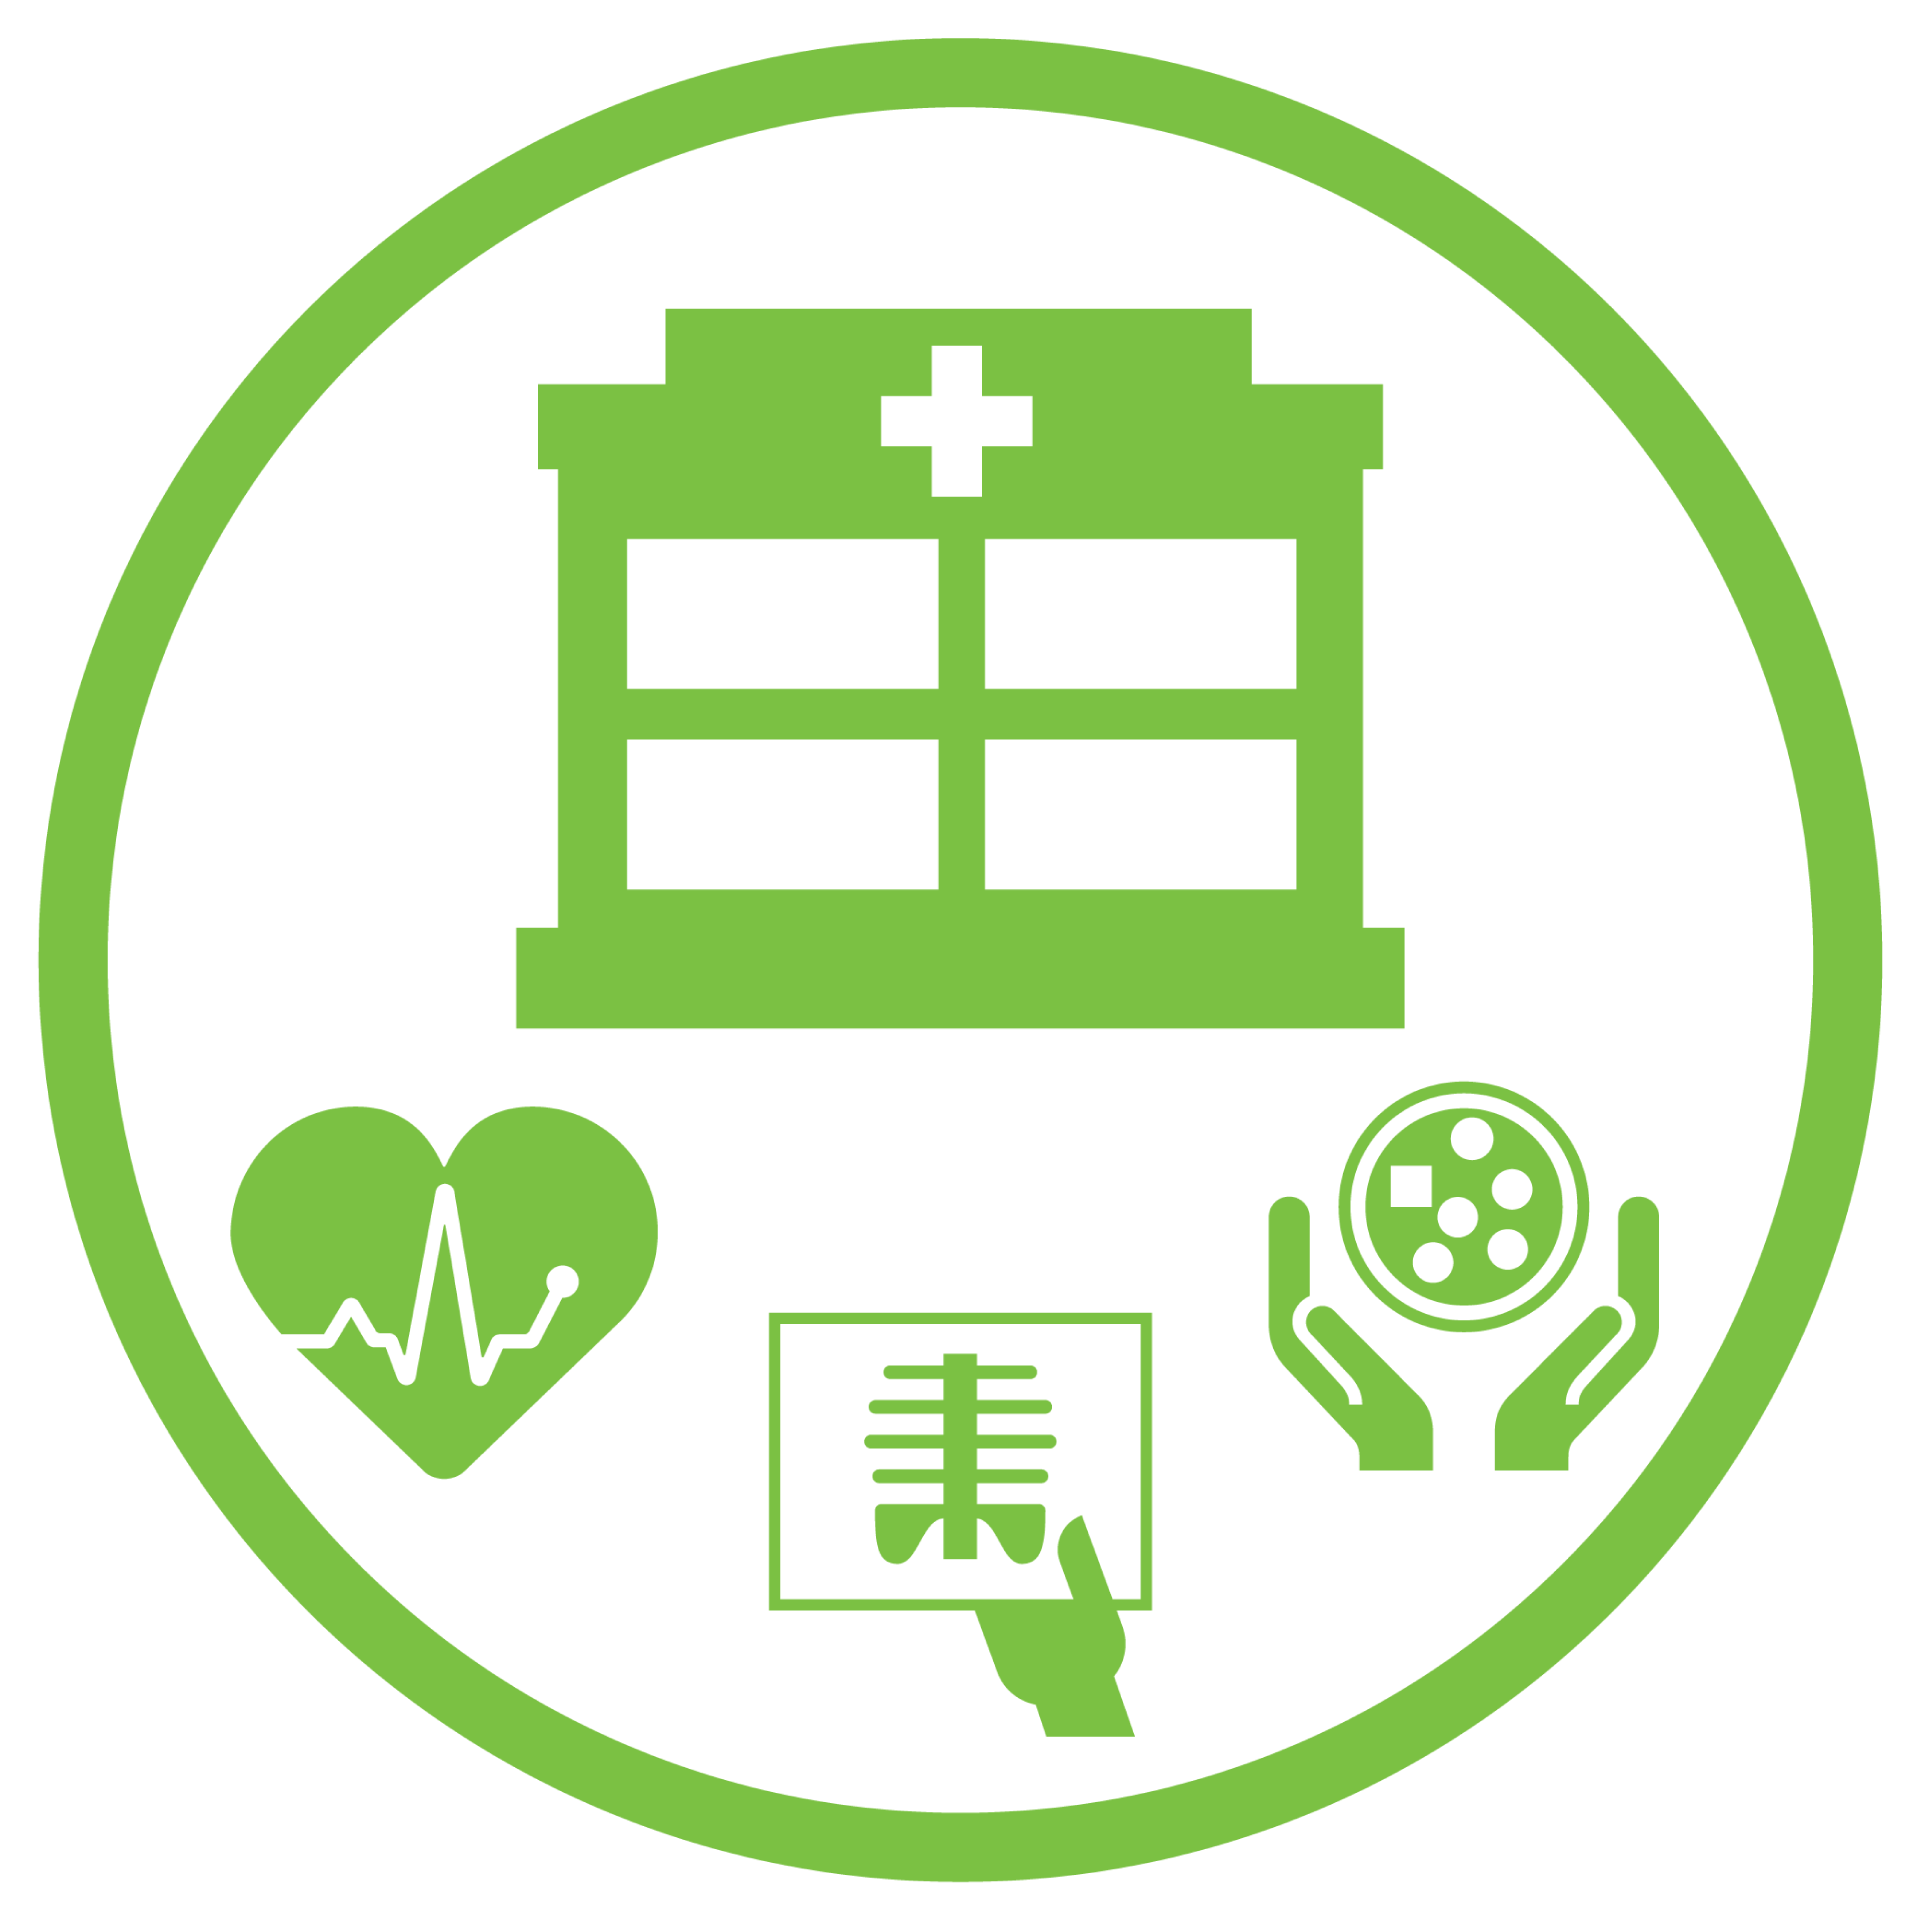 AmbulatoryIcon_Service line advancement_green_hospital and other med icons